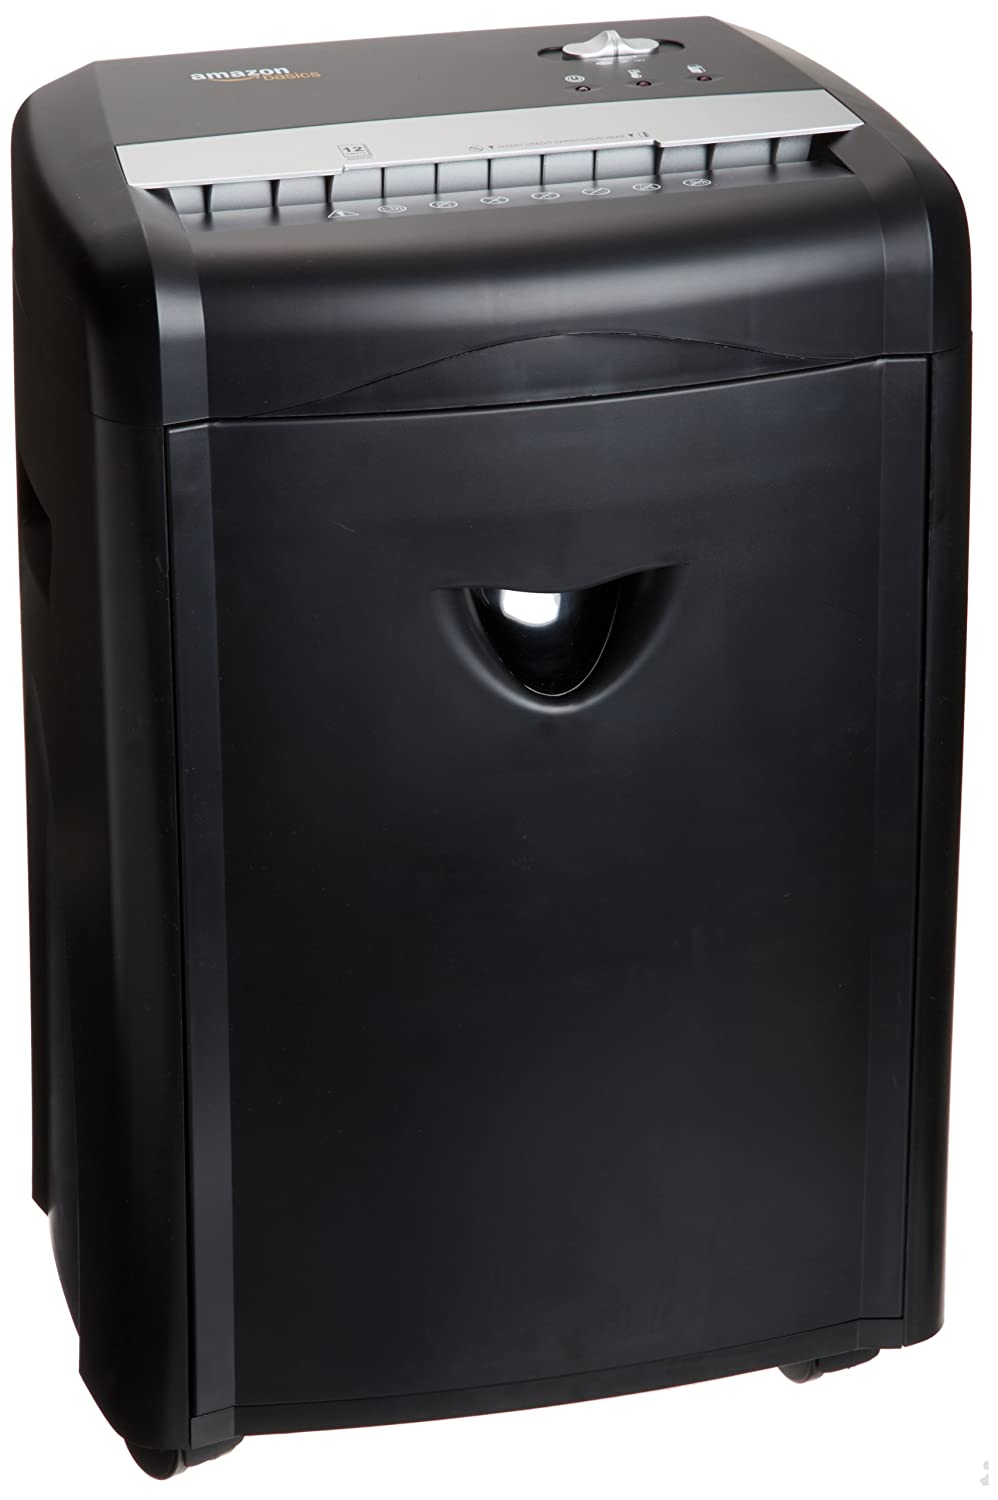 AmazonBasics 12-Sheet Shredder Black Friday Deals